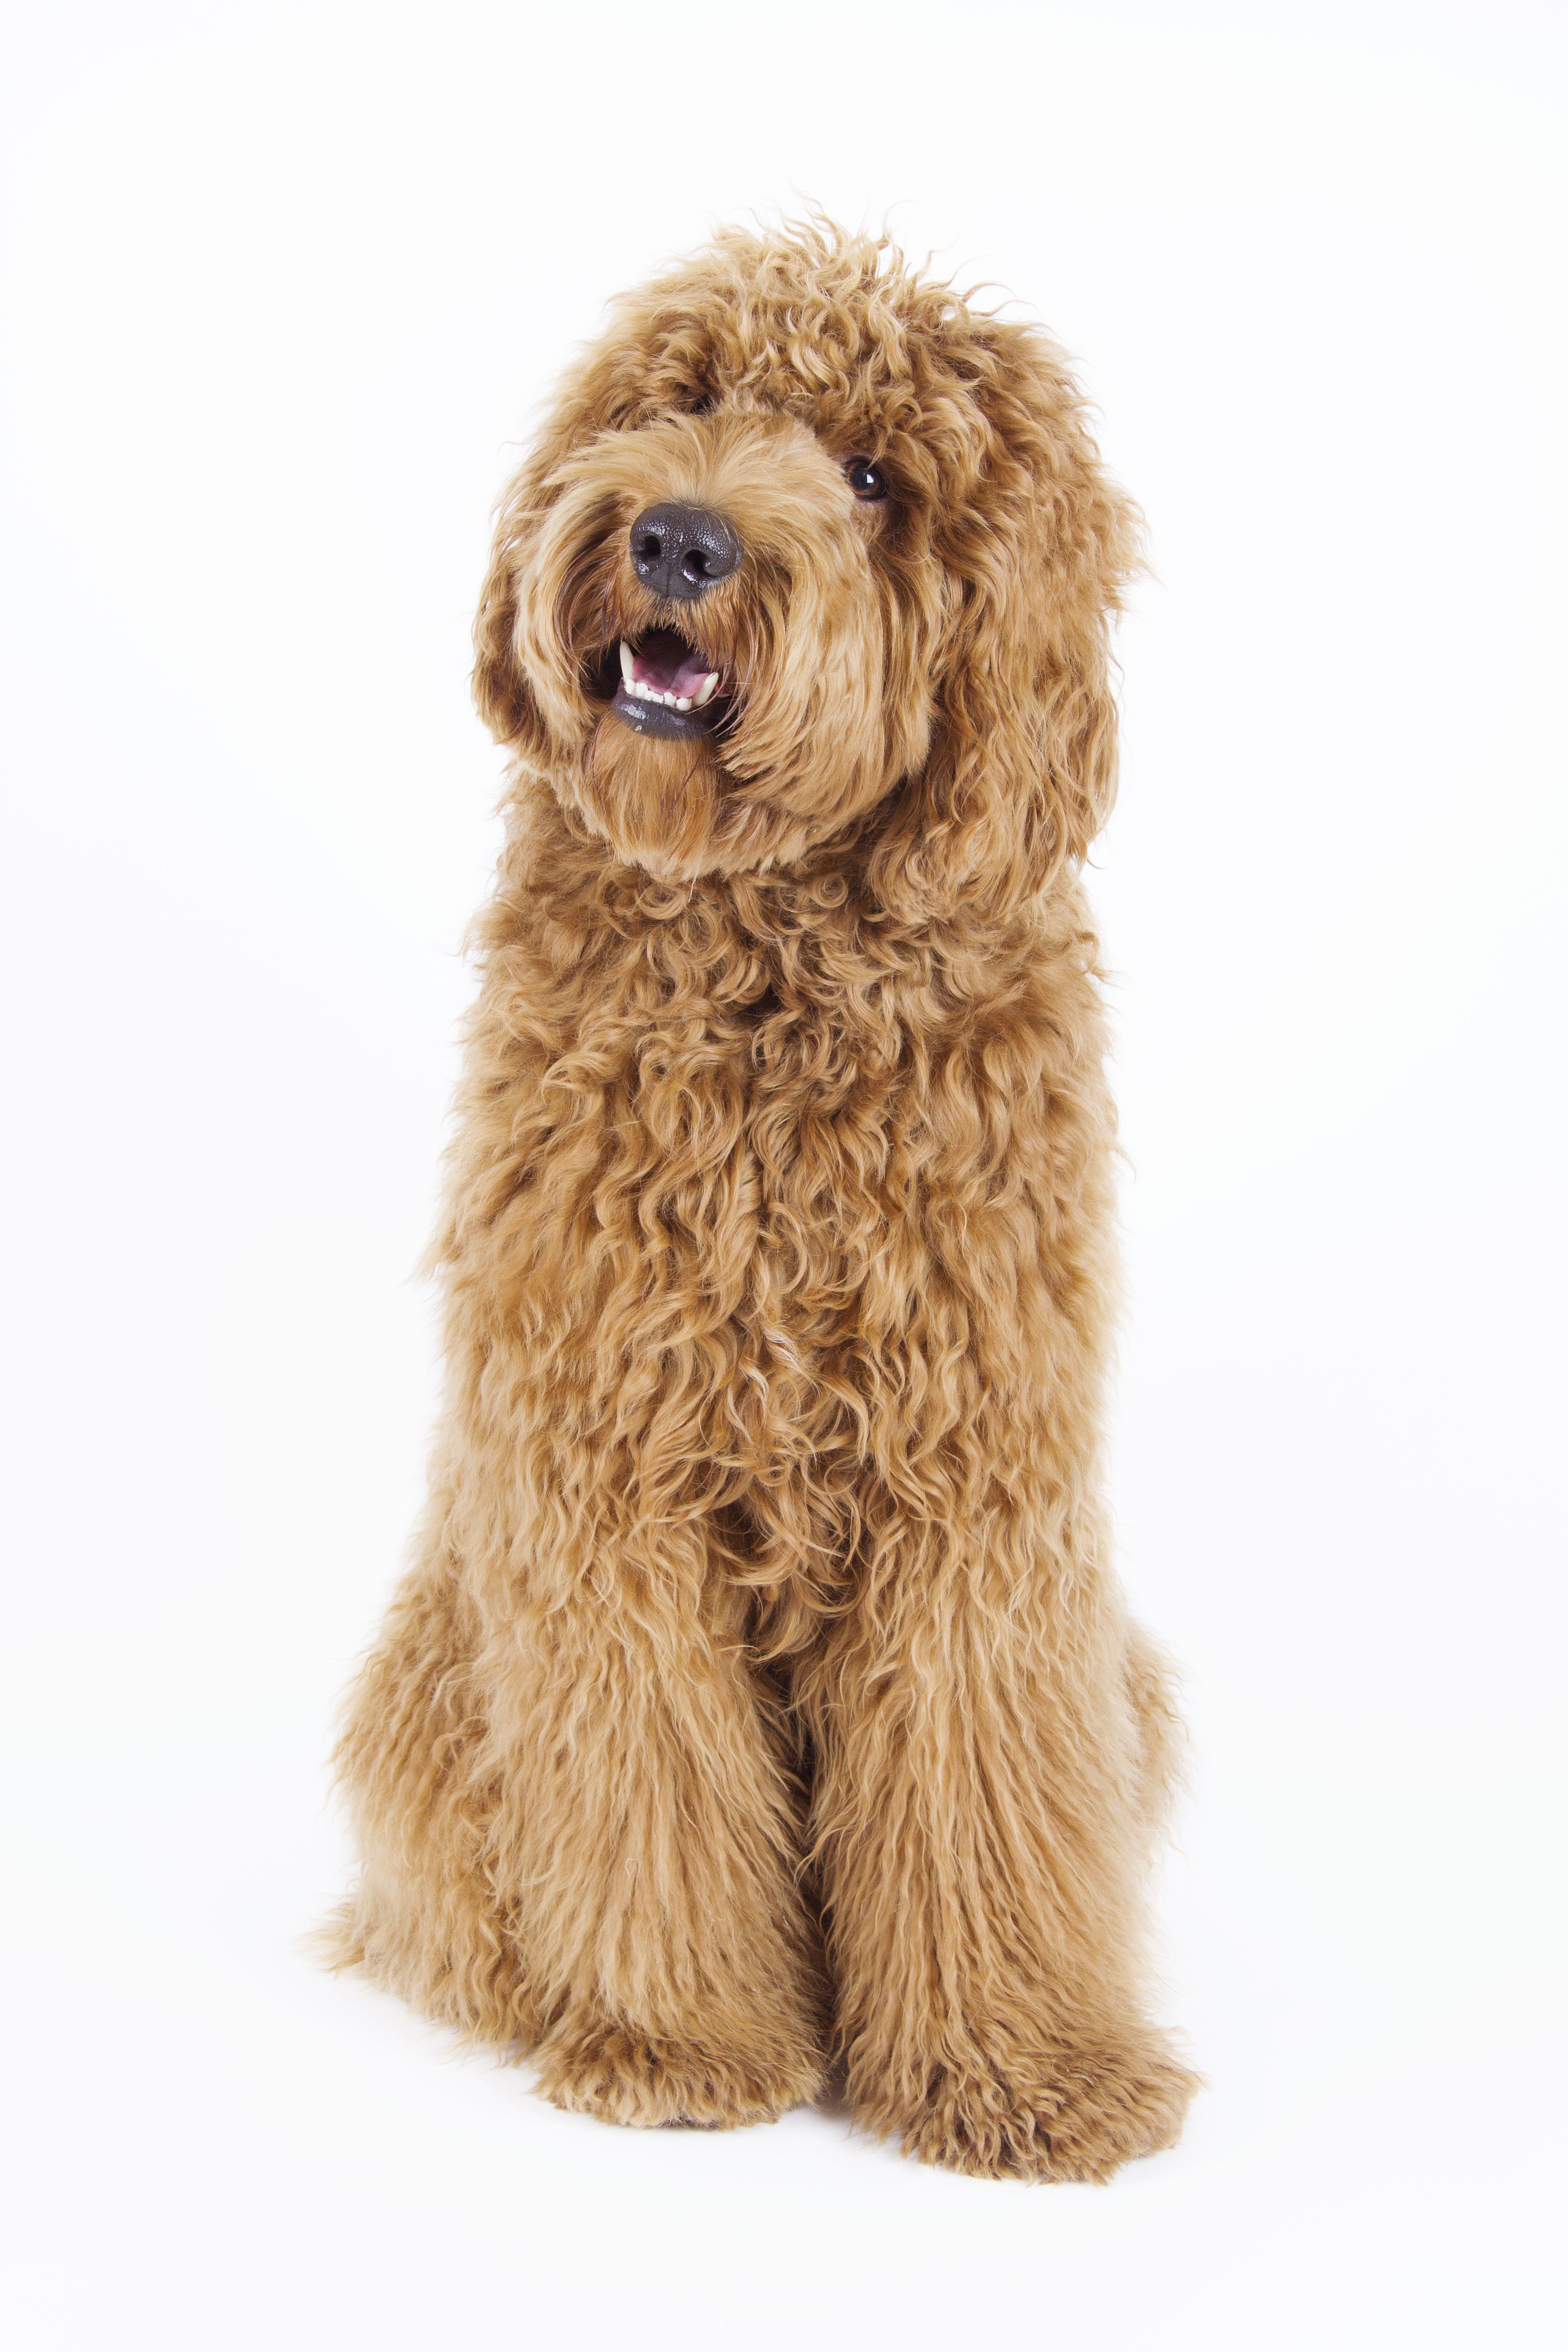 8 Surprising Facts About The Labradoodle Labradoodle Dogs Puppies